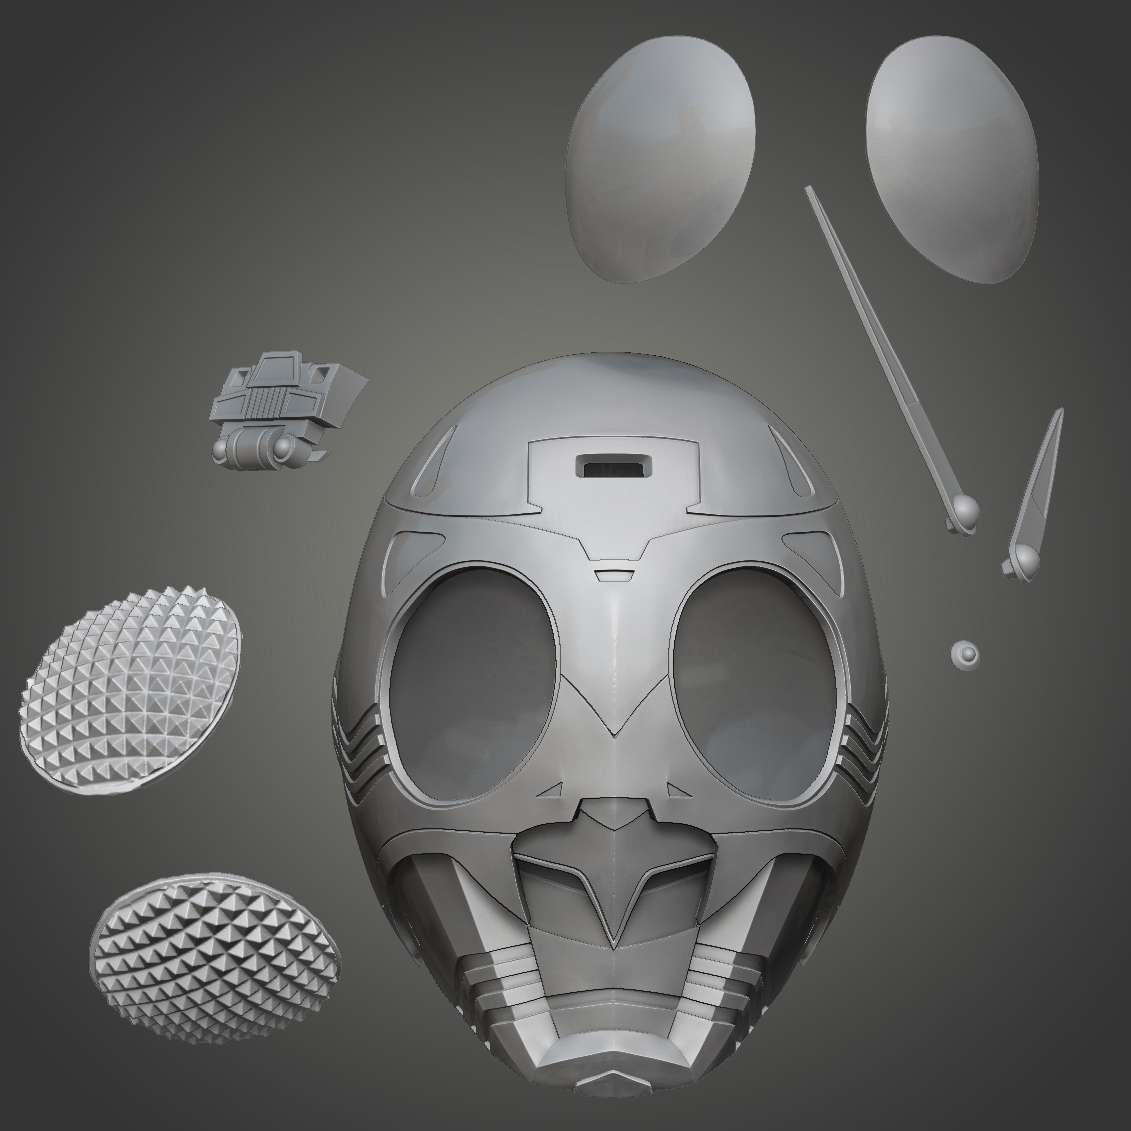 Shadow Moon helmet for cosplay - Helmet for Shadow moon, the enemy of Kamen Rider, from Tokusatsu heros. - The best files for 3D printing in the world. Stl models divided into parts to facilitate 3D printing. All kinds of characters, decoration, cosplay, prosthetics, pieces. Quality in 3D printing. Affordable 3D models. Low cost. Collective purchases of 3D files.